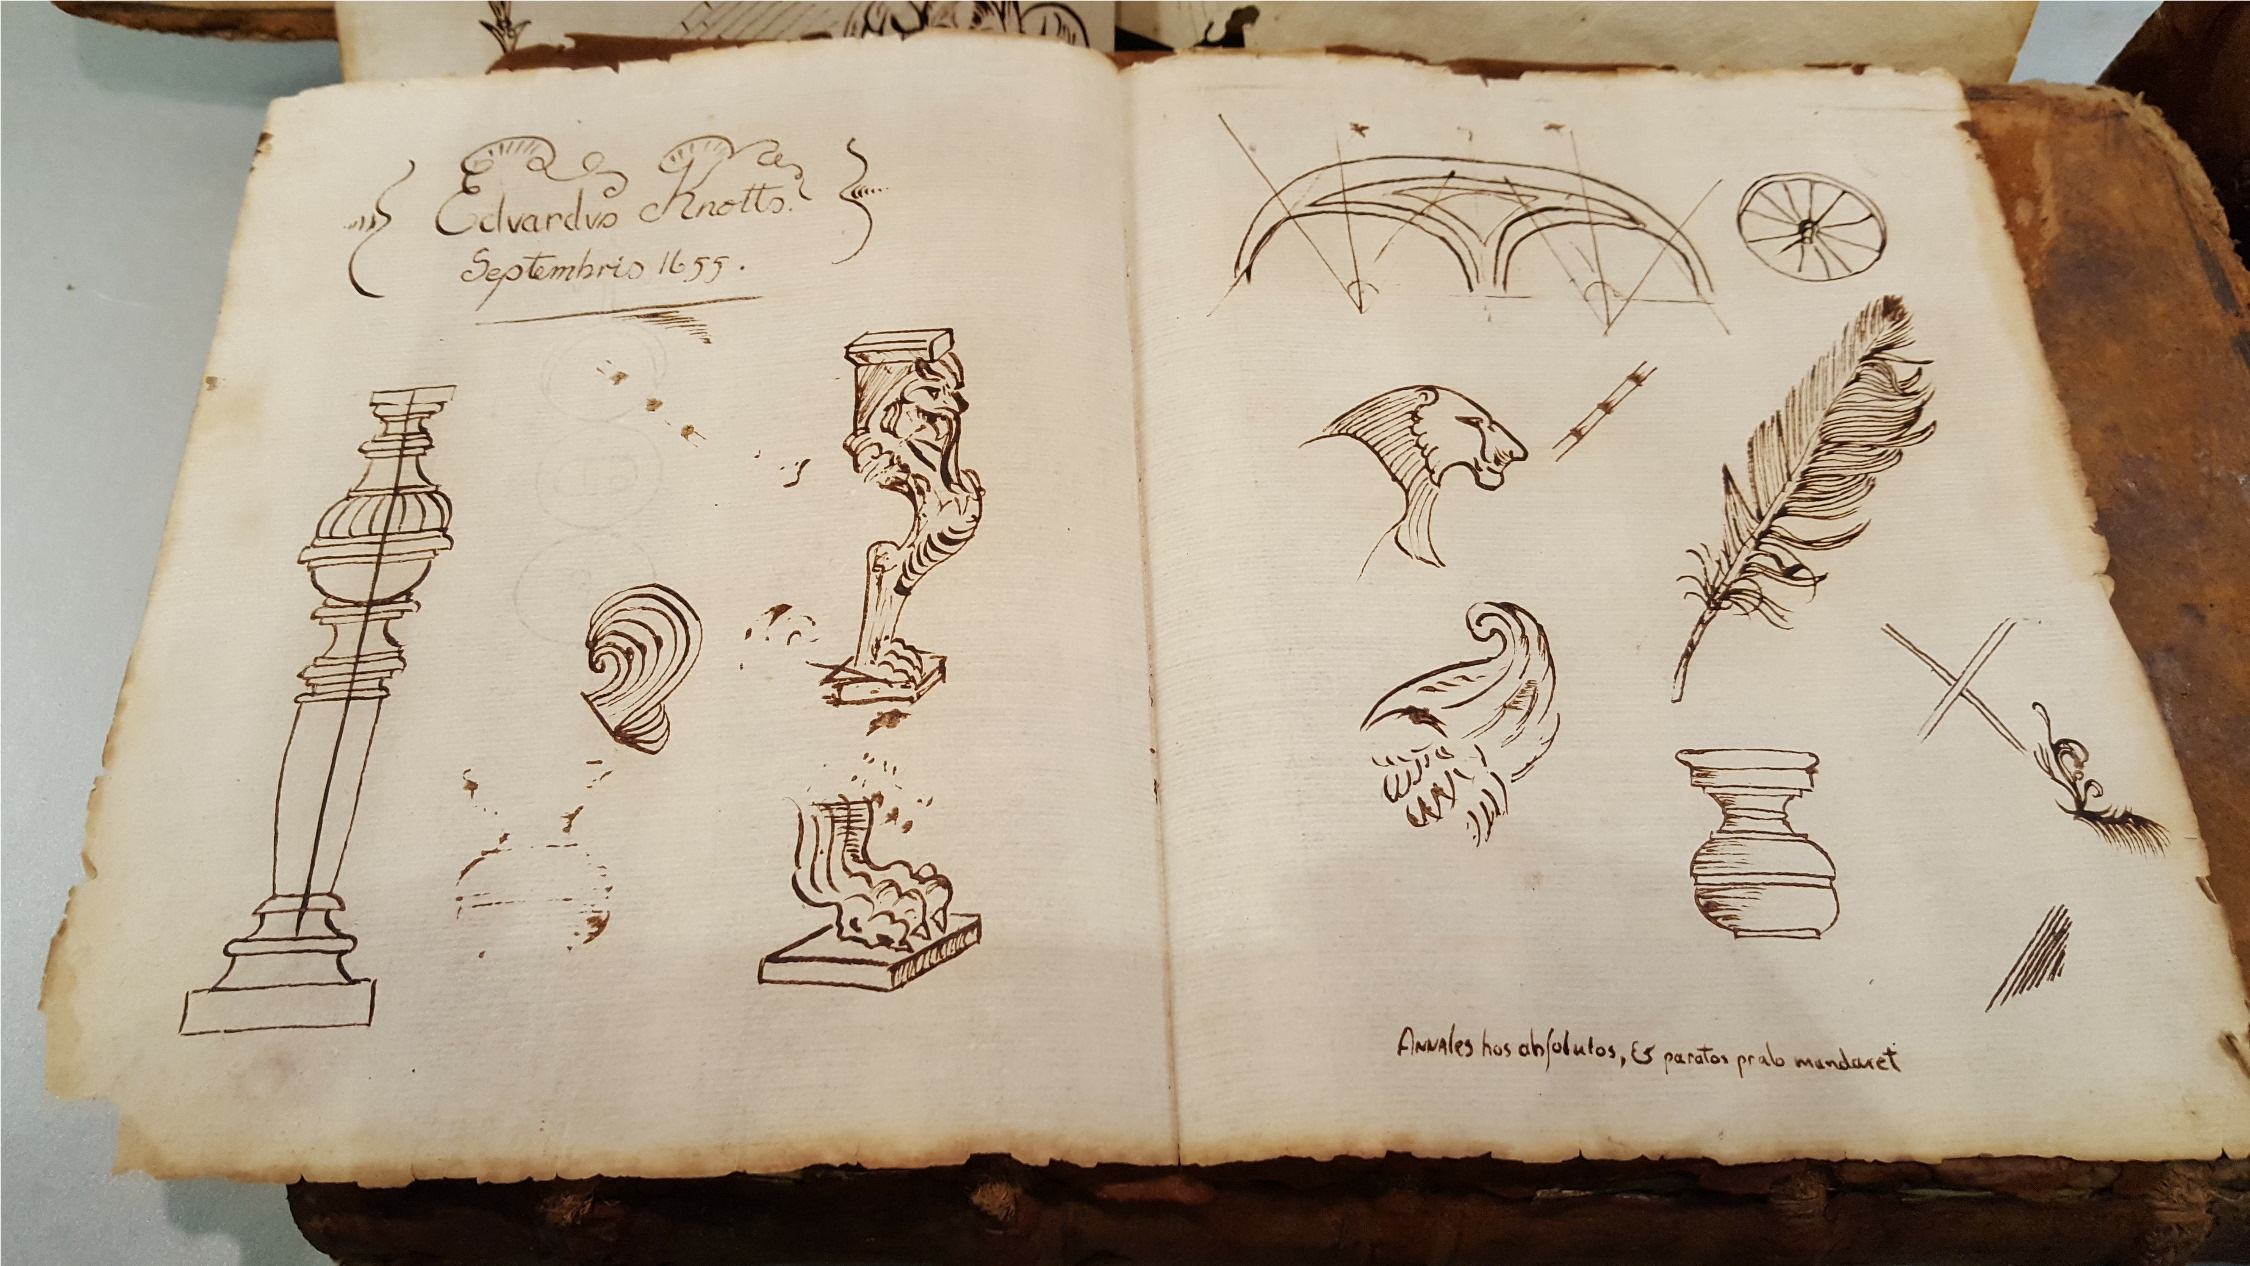 Lot 16 - Antique 1655 Drawings Signed Edward Knotts Possibly A Jesuit Priest